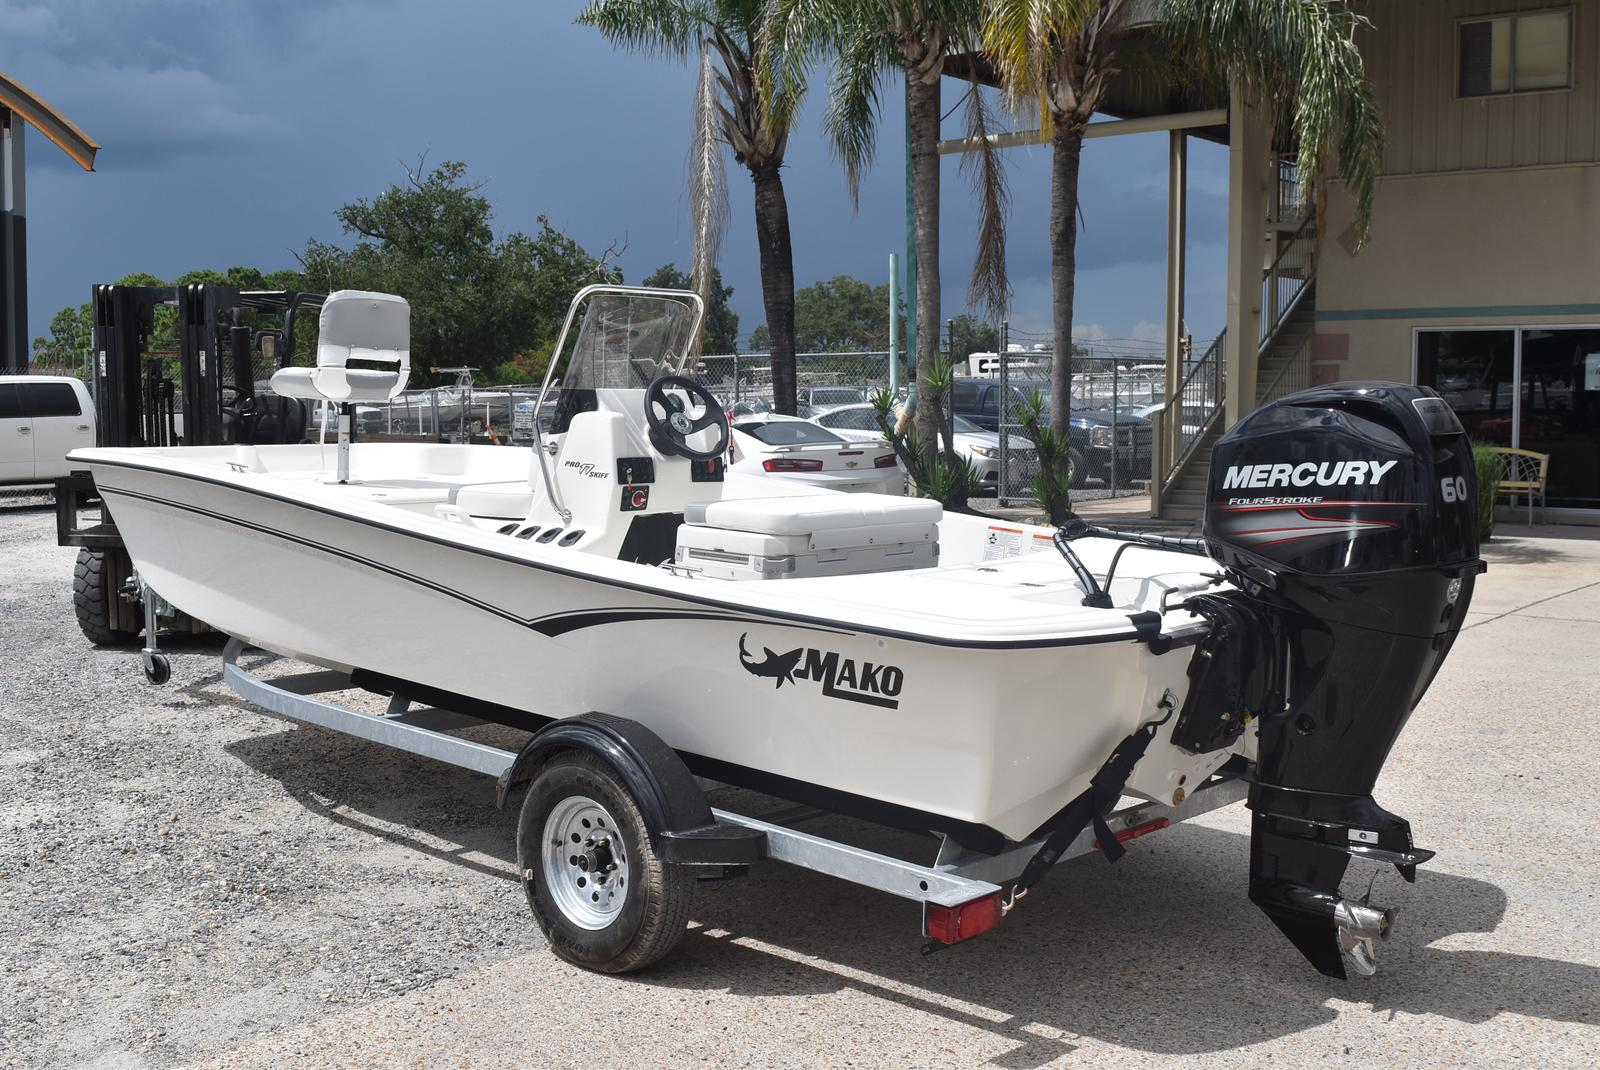 2020 Mako boat for sale, model of the boat is Pro Skiff 17, 75 ELPT & Image # 216 of 702